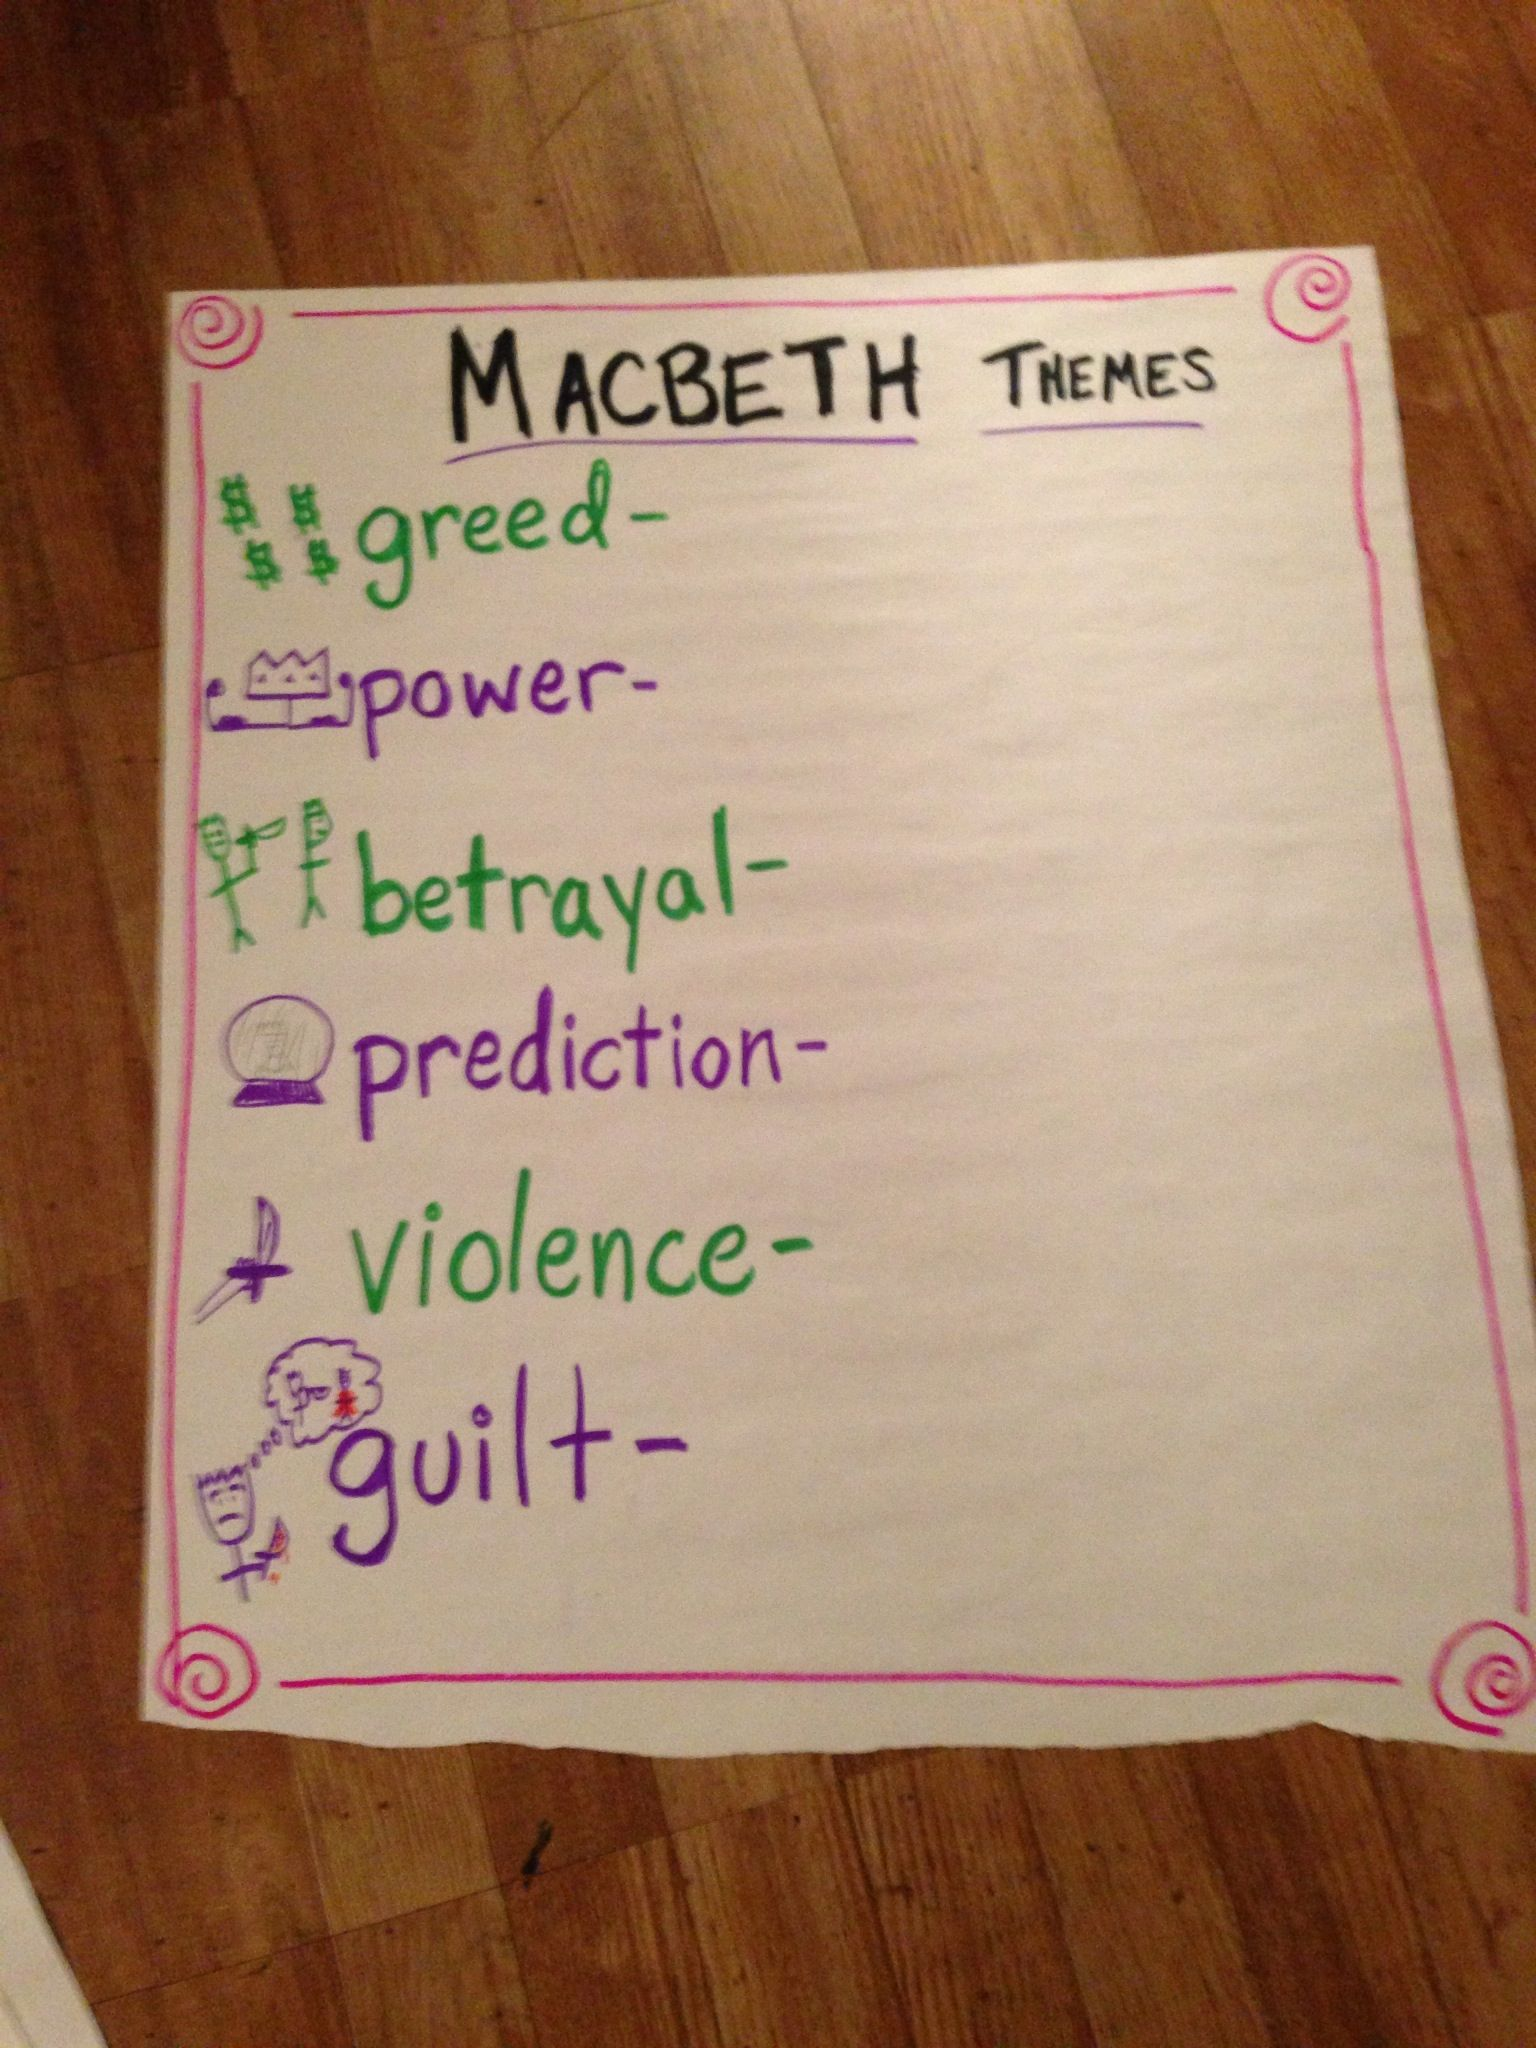 What is the major theme of Act II in Macbeth?